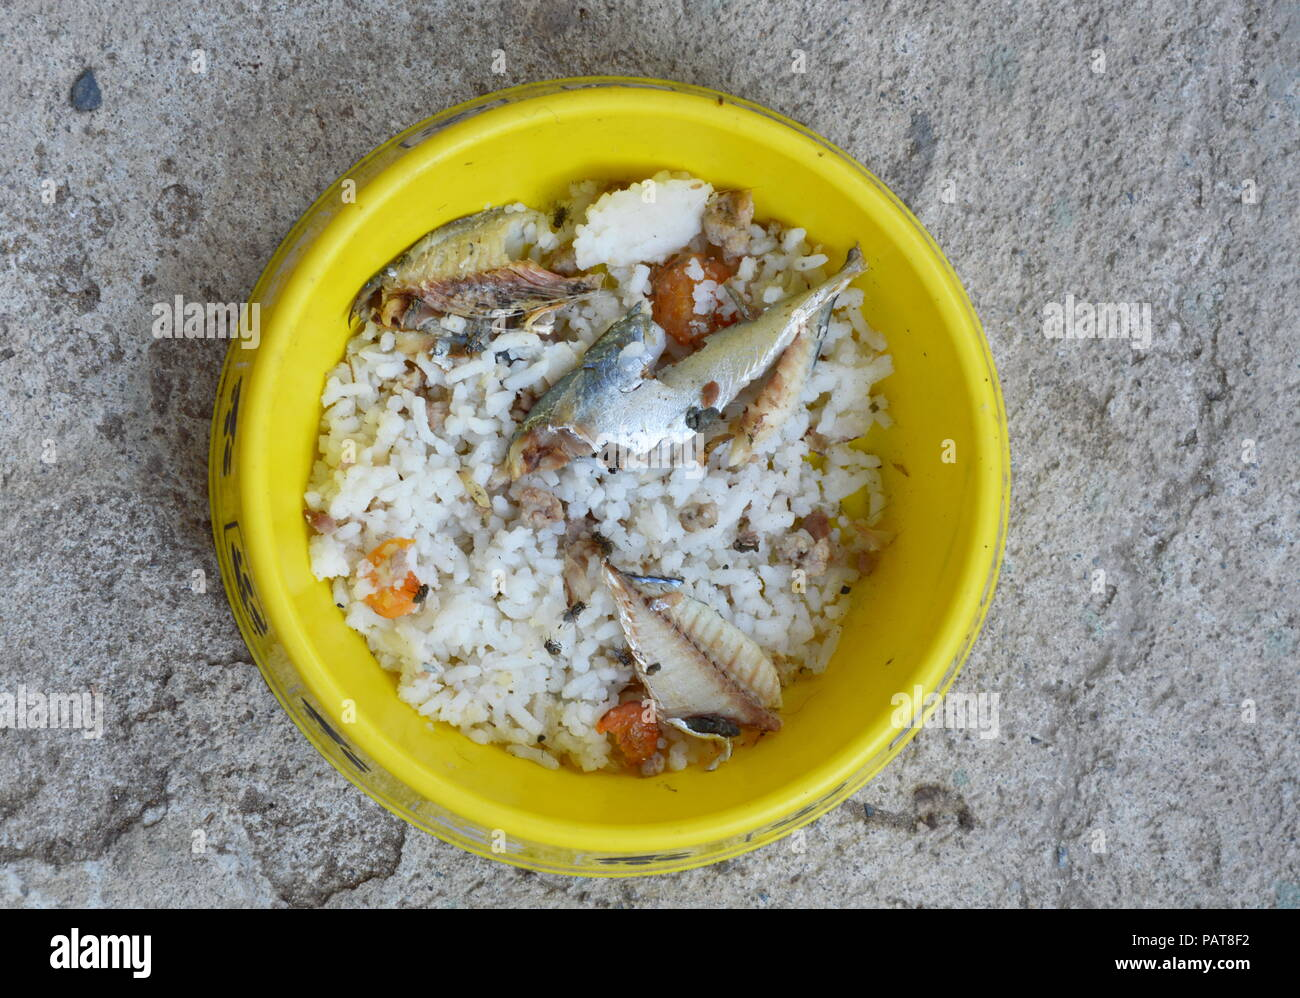 fly on mackerel with rice after cat feeding left over in yellow bowl - Stock Image